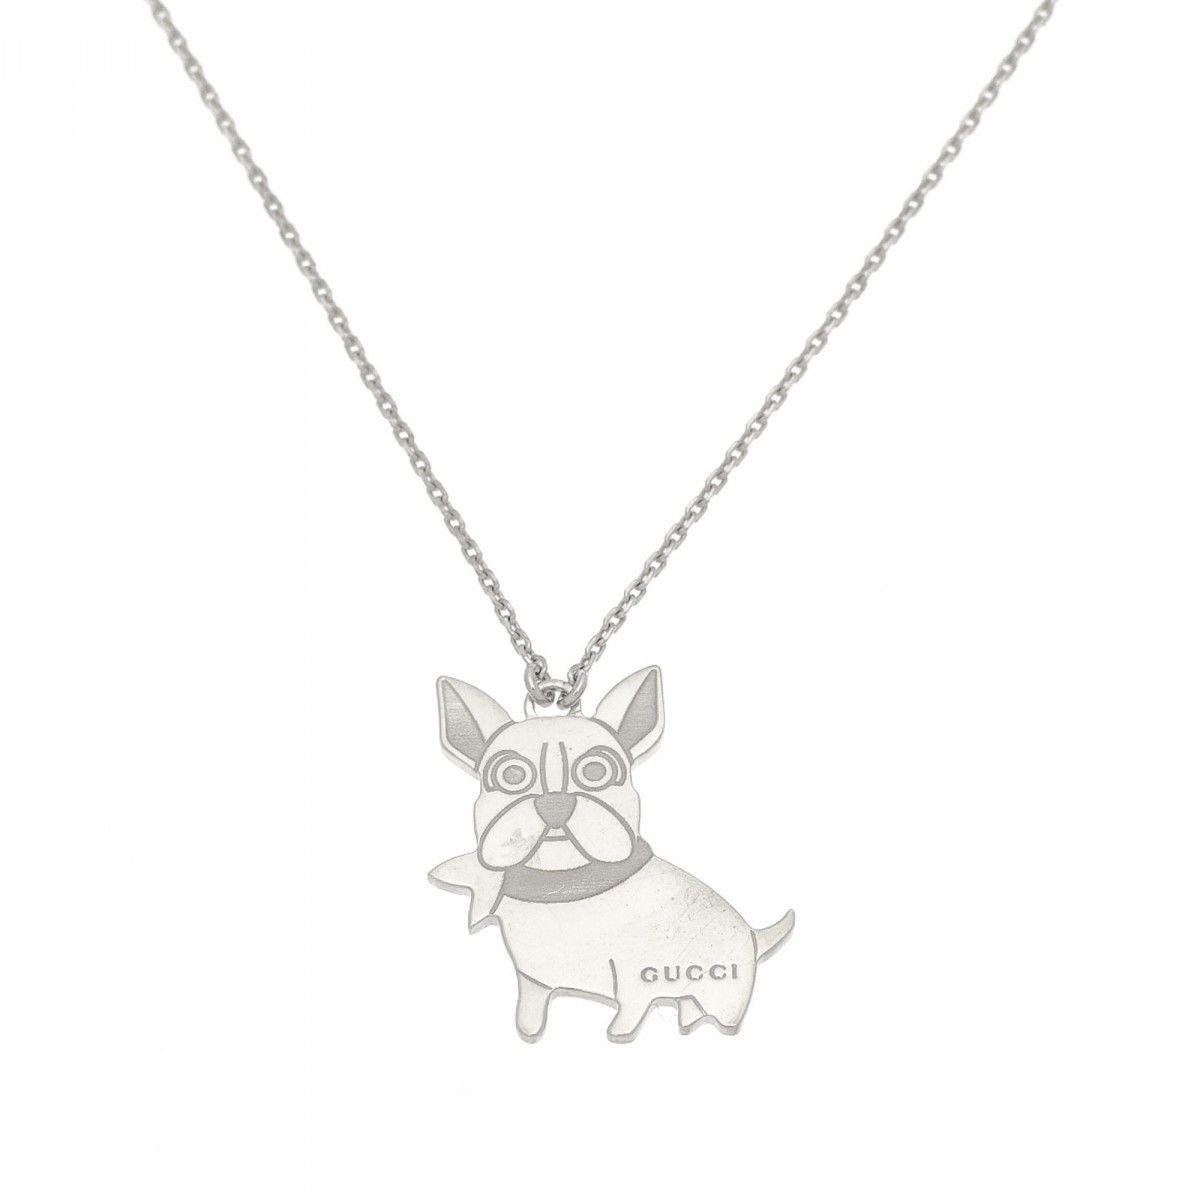 Gucci dog pendant necklace 50cm 925 sterling silver lxrandco pre gucci dog pendant necklace 50cm 925 sterling silver lxrandco pre owned luxury vintage aloadofball Gallery